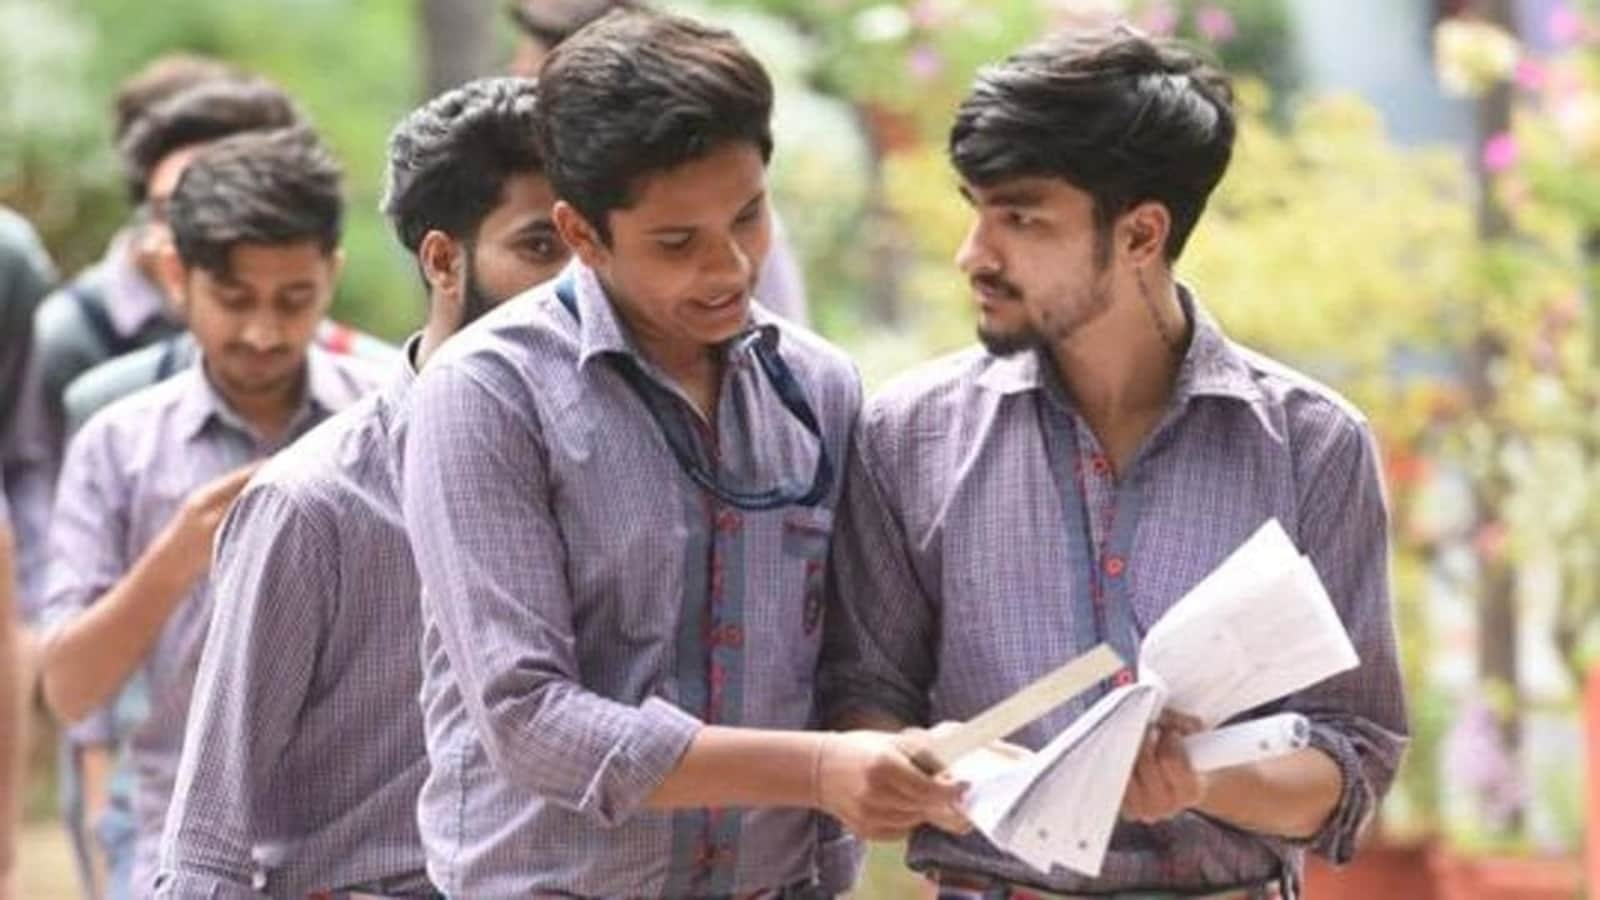 CBSE 12th Board exams 2021: Most states say hold exams, back 90-minute  paper   Hindustan Times